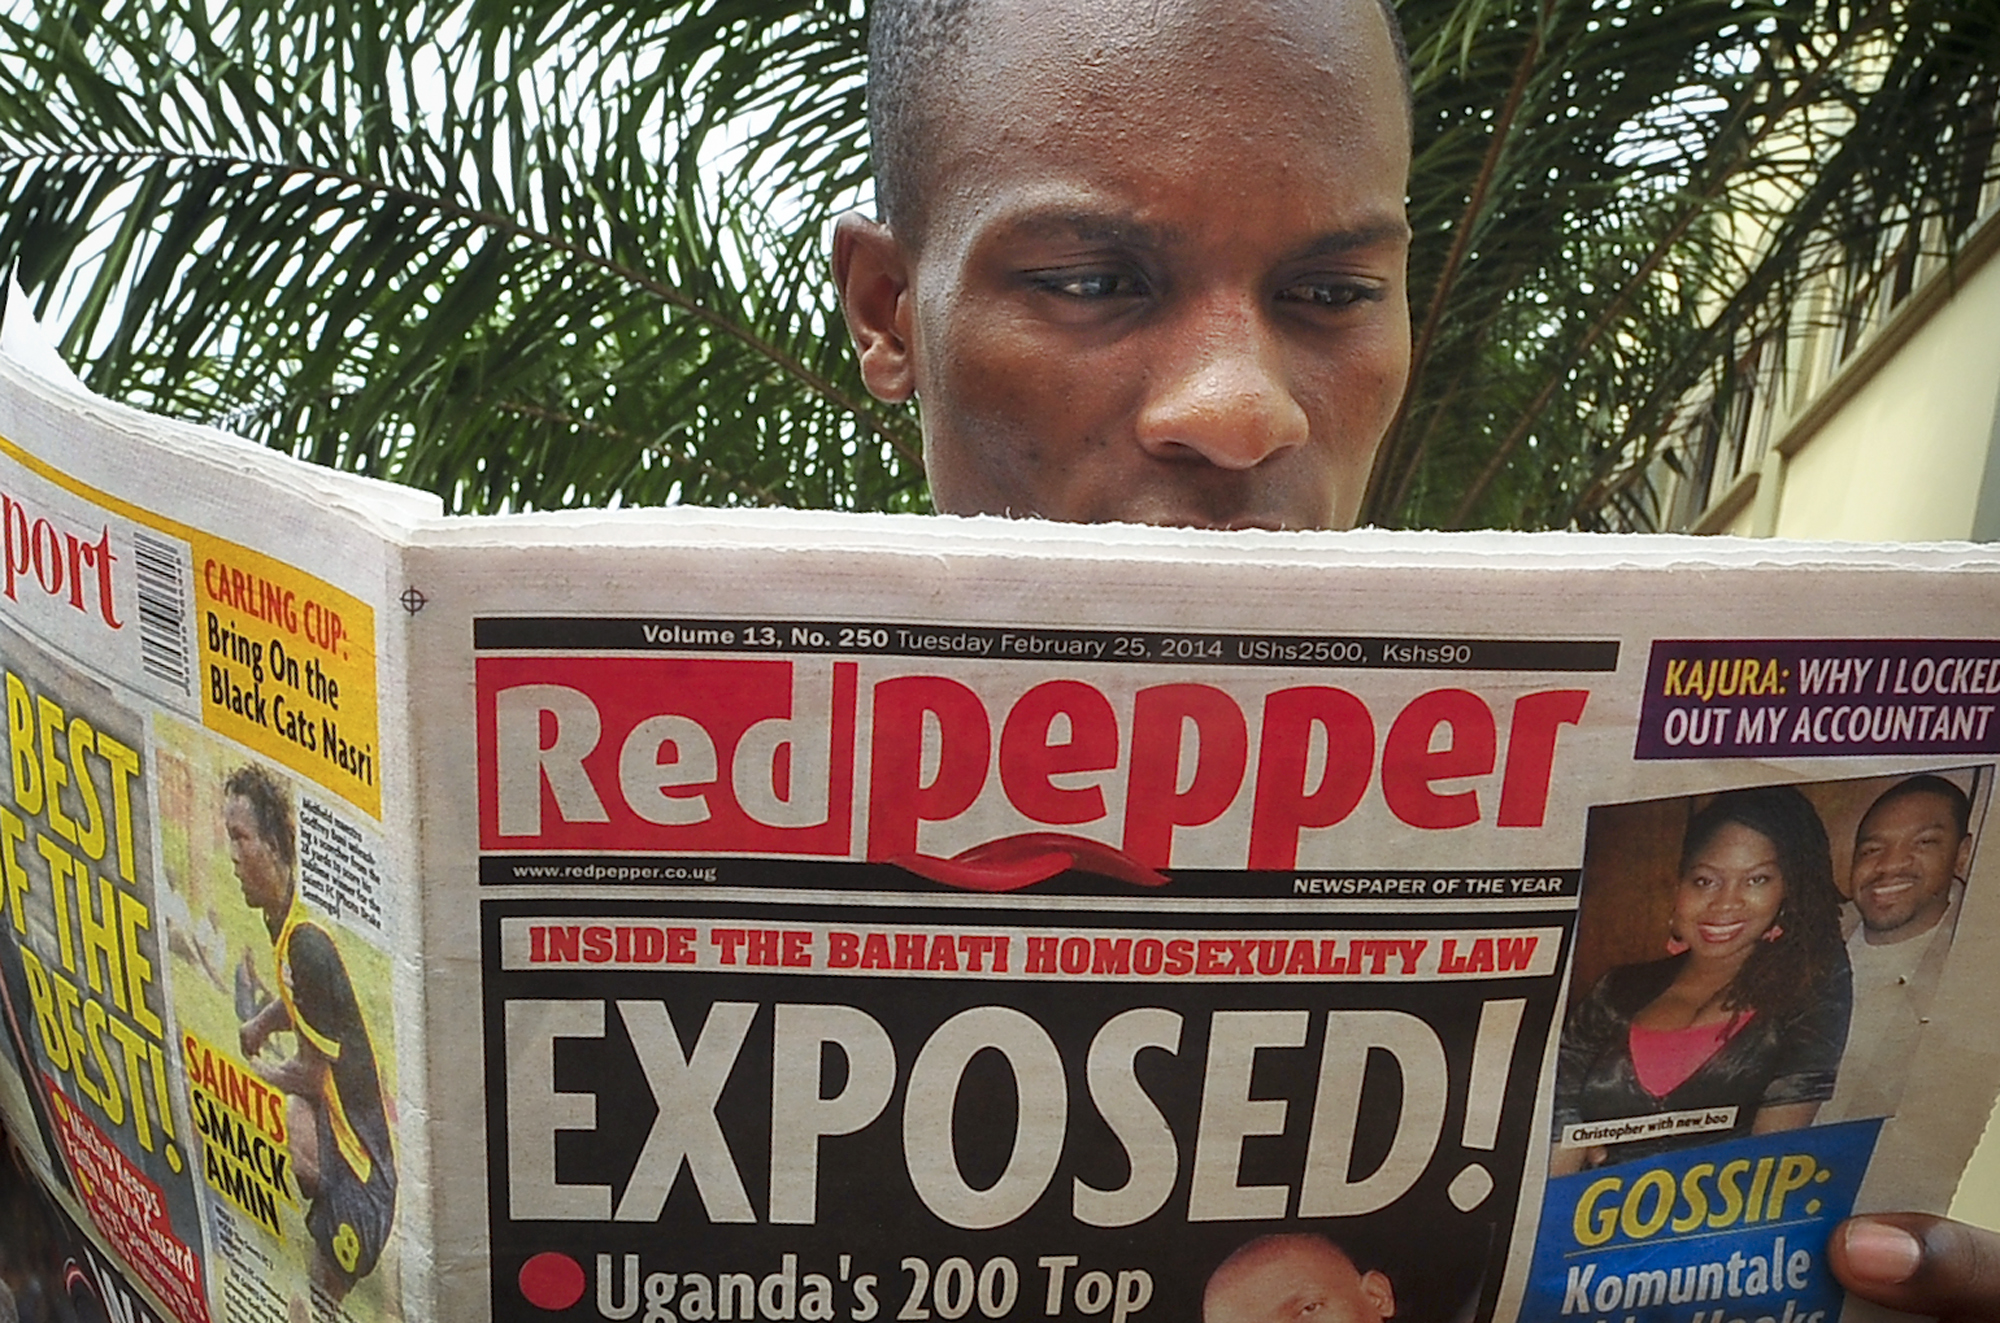 """A Ugandan reads a copy of the """"Red Pepper"""" tabloid newspaper in Kampala, Uganda Tuesday, Feb. 25, 2014. The Ugandan newspaper published a list Tuesday of what it called the country's """"200 top"""" homosexuals, outing some Ugandans who previously had not identified themselves as gay, one day after the president Yoweri Museveni enacted a harsh anti-gay law. (AP Photo/Stephen Wandera)"""